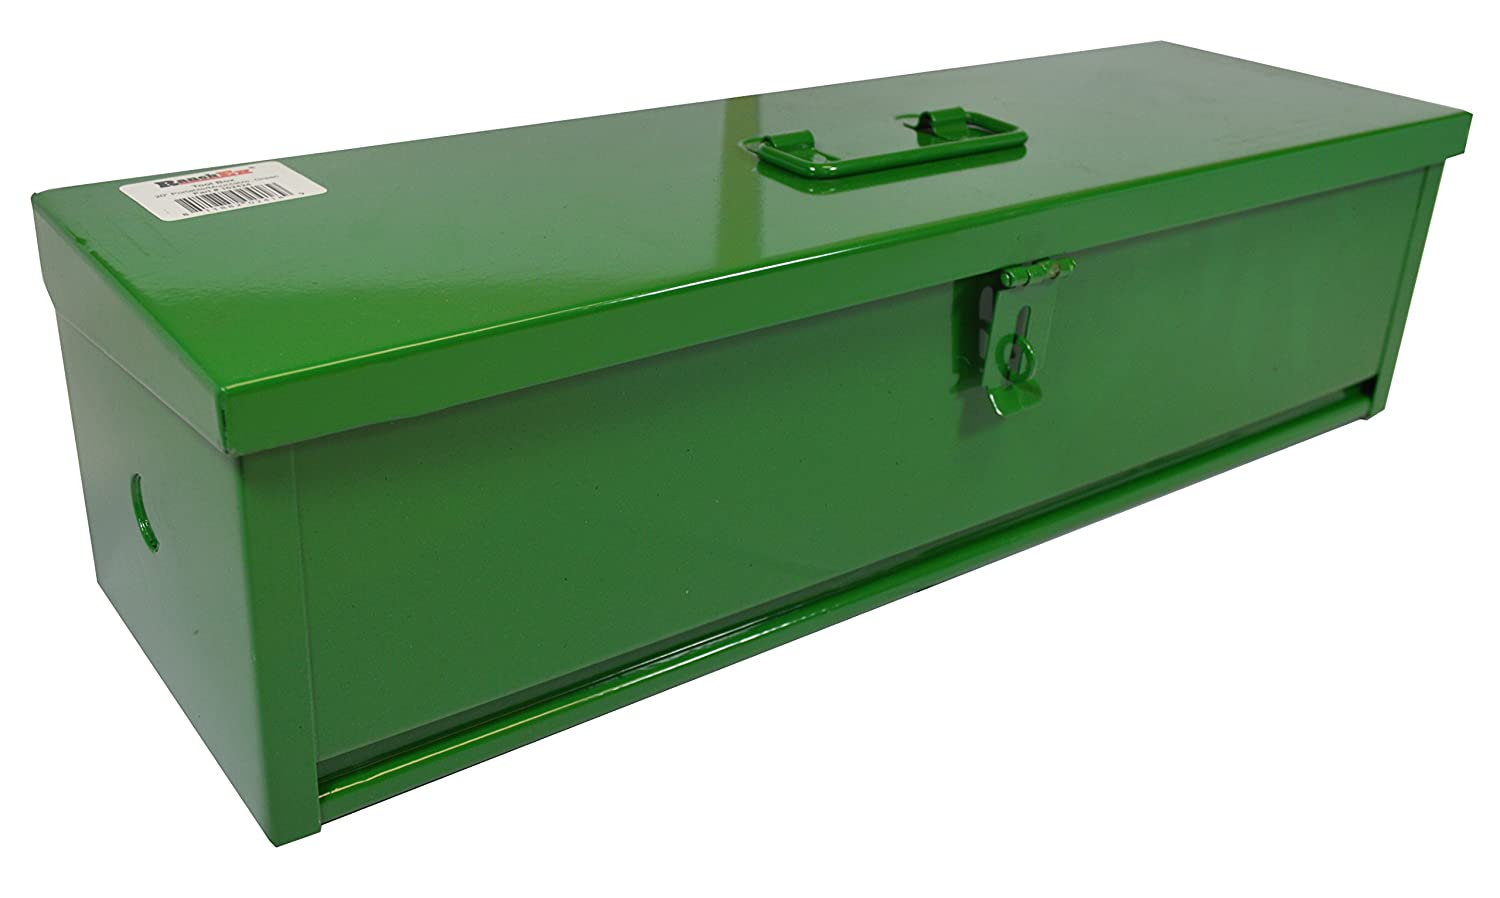 RanchEx 102424 Tool Box - Portable for Trucks/Tractors, Mounting Hardware Included - 20' - Green Mounting Hardware Included - 20 - Green